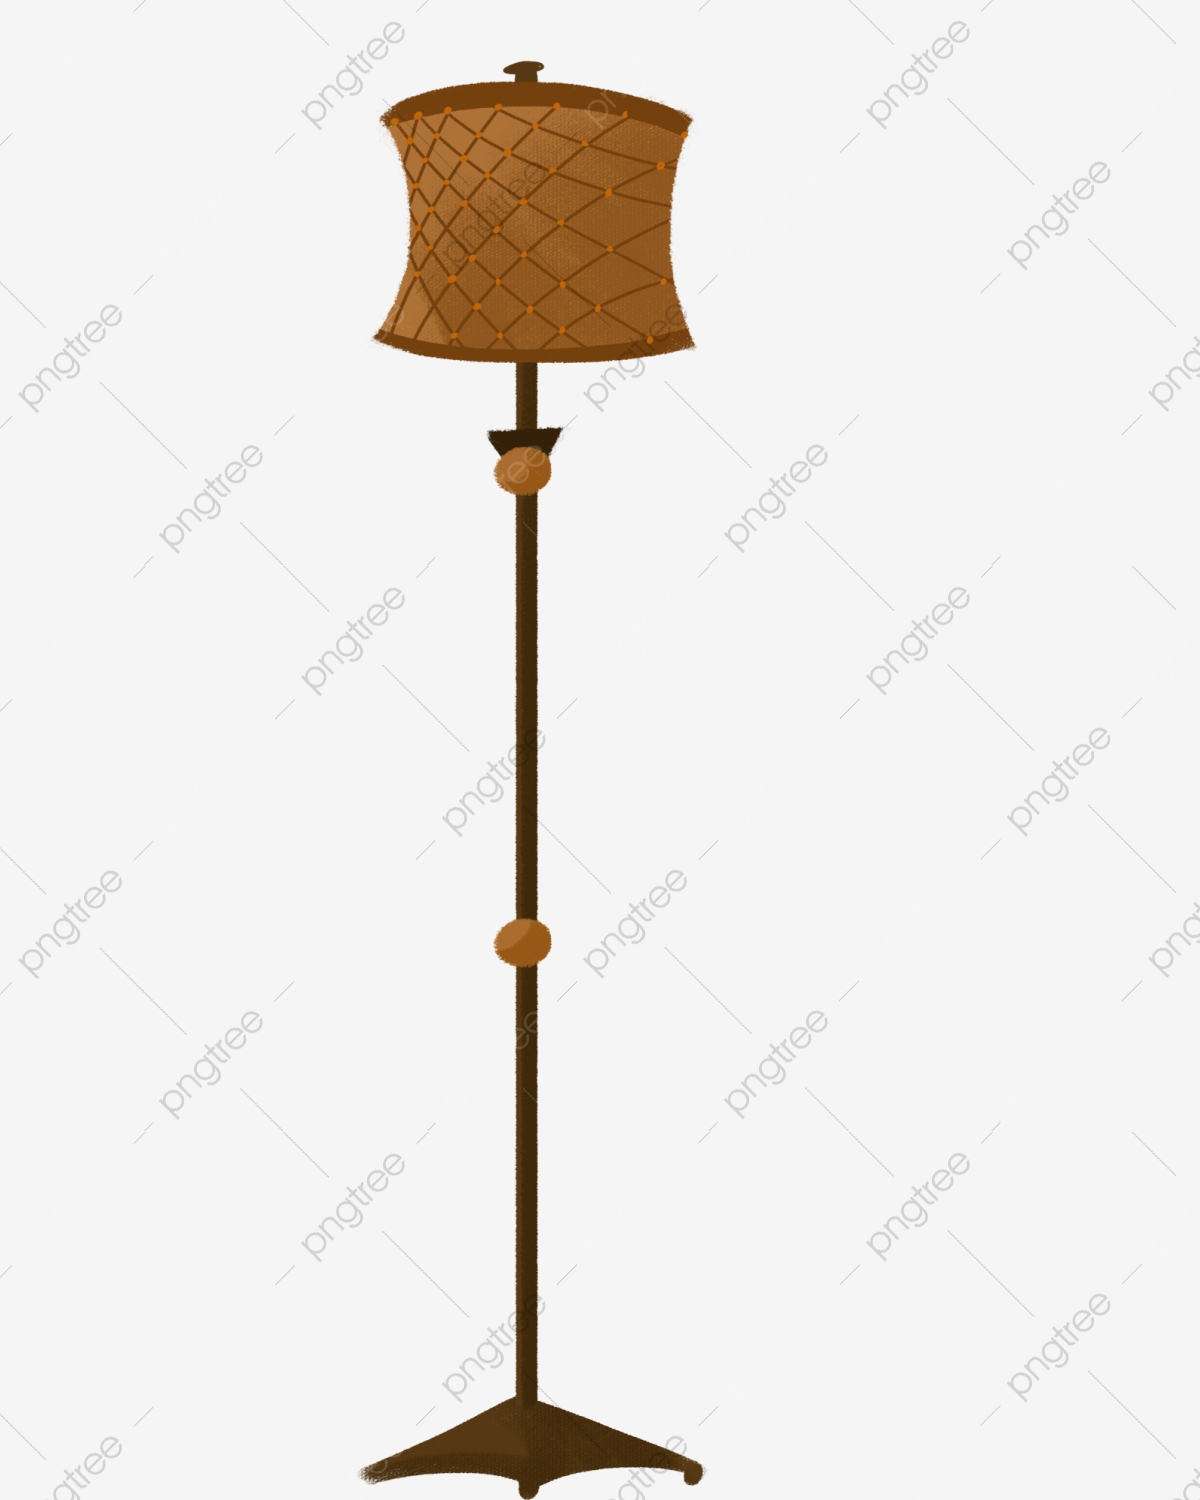 A Simple And Energy Saving Floor Lamp Simple Energy Saving